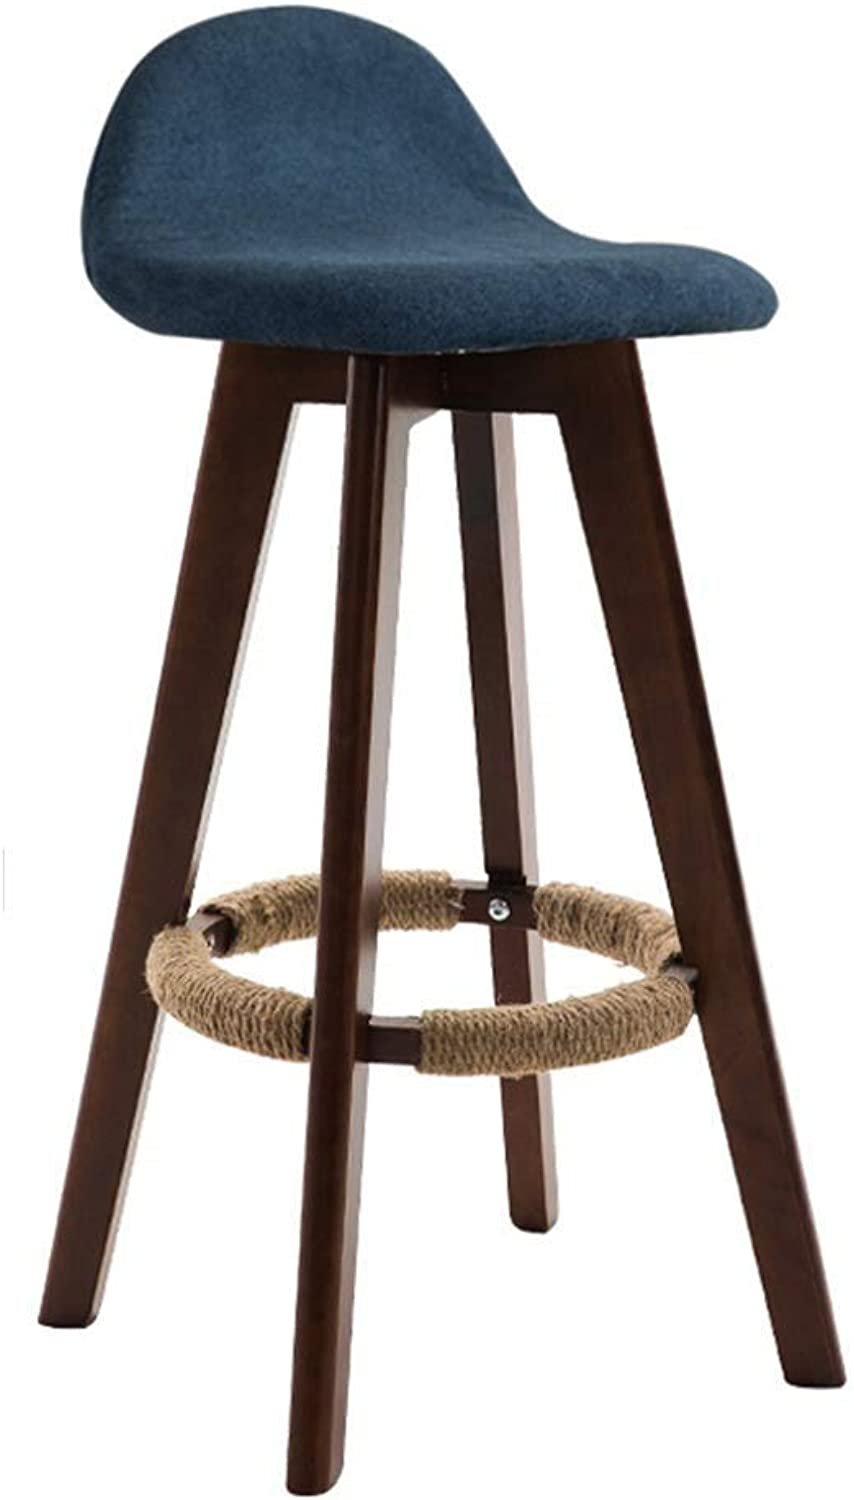 Square Wooden Leg Bar Chair, Kitchen Cafe Counter High Stool Stool Bench Linen Cushion, Stylish Modern Style (color   Brown, Size   Seat Height 63cm)